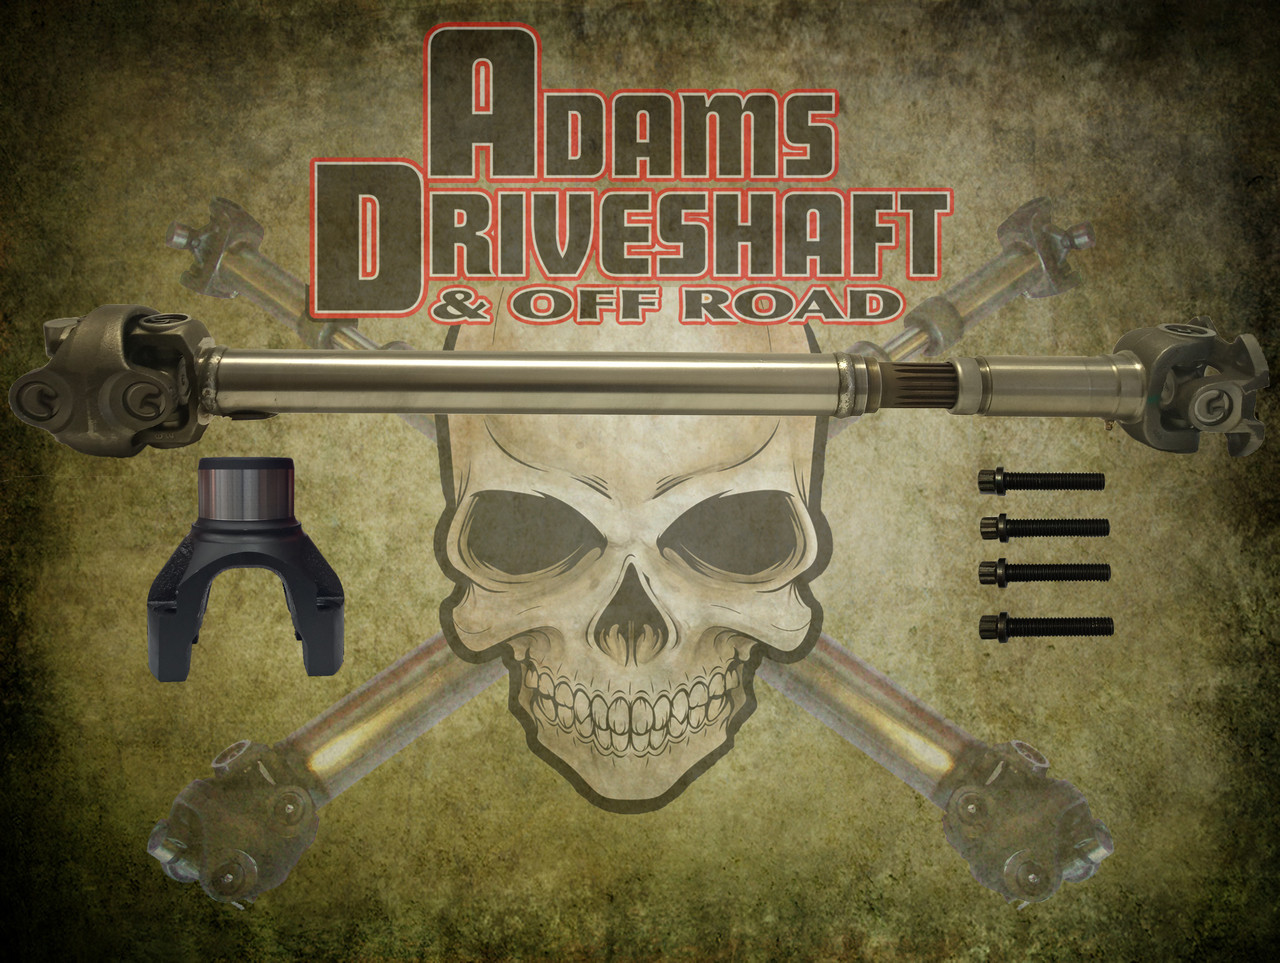 ADAMS DRIVESHAFT JL RUBICON OR NON RUBICON FRONT 1350 CV DRIVESHAFT SOLID  U-JOINTS OEM FLANGE STYLE [EXTREME DUTY SERIES]